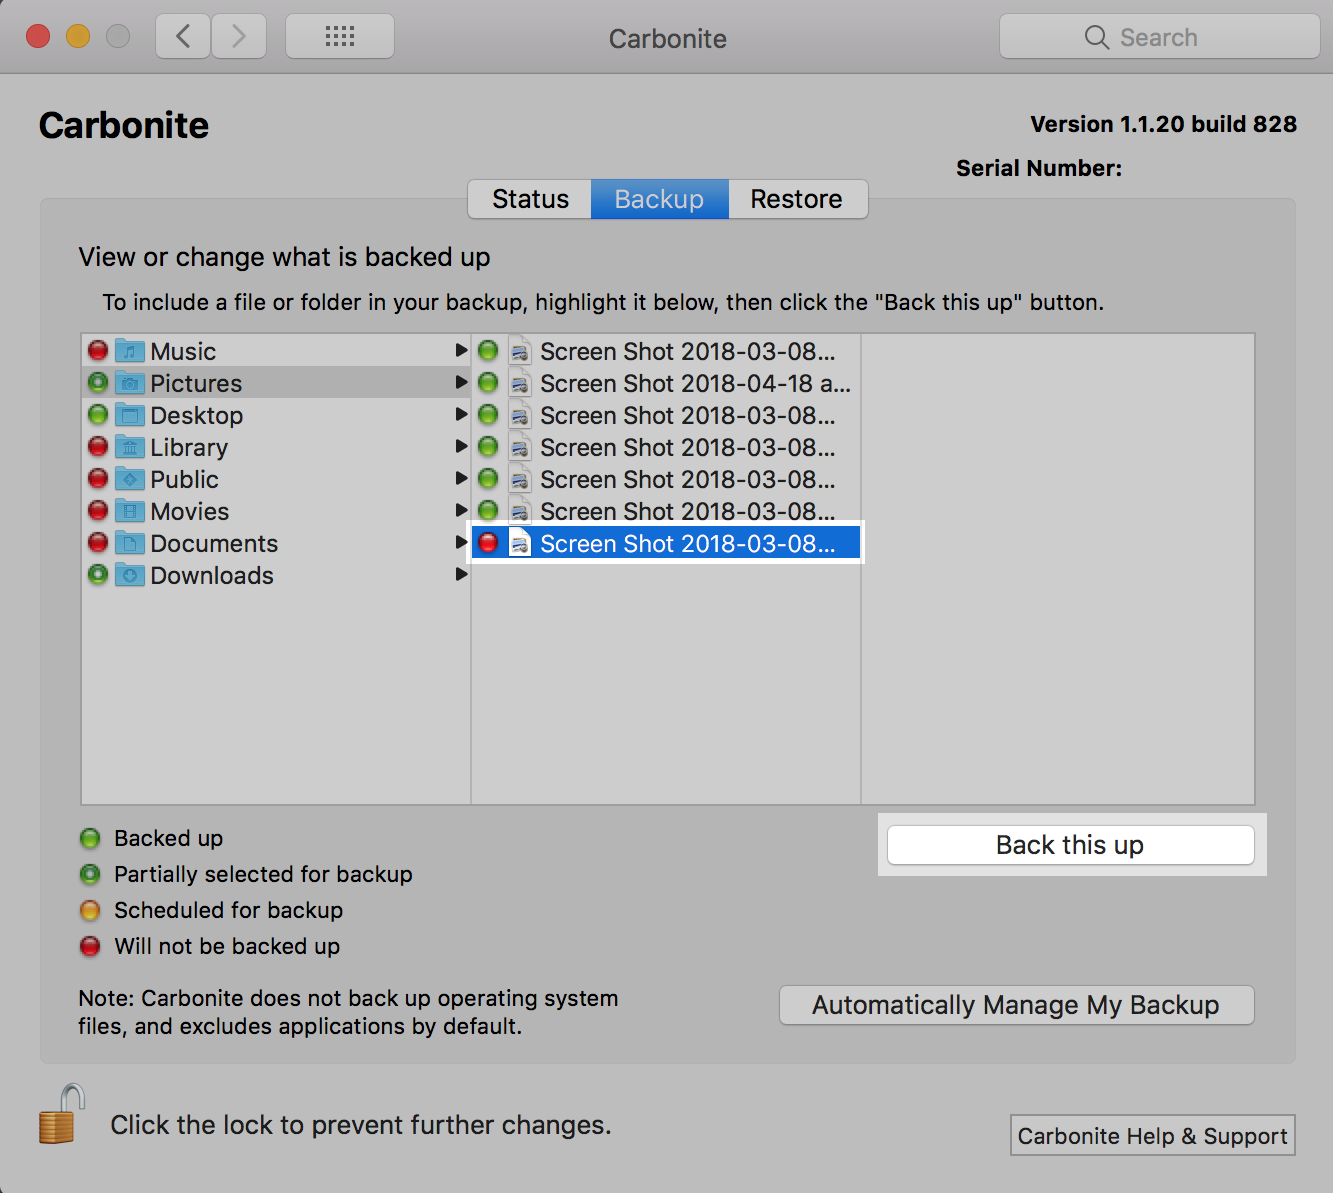 Carbonite Mac Client: File name Back this up